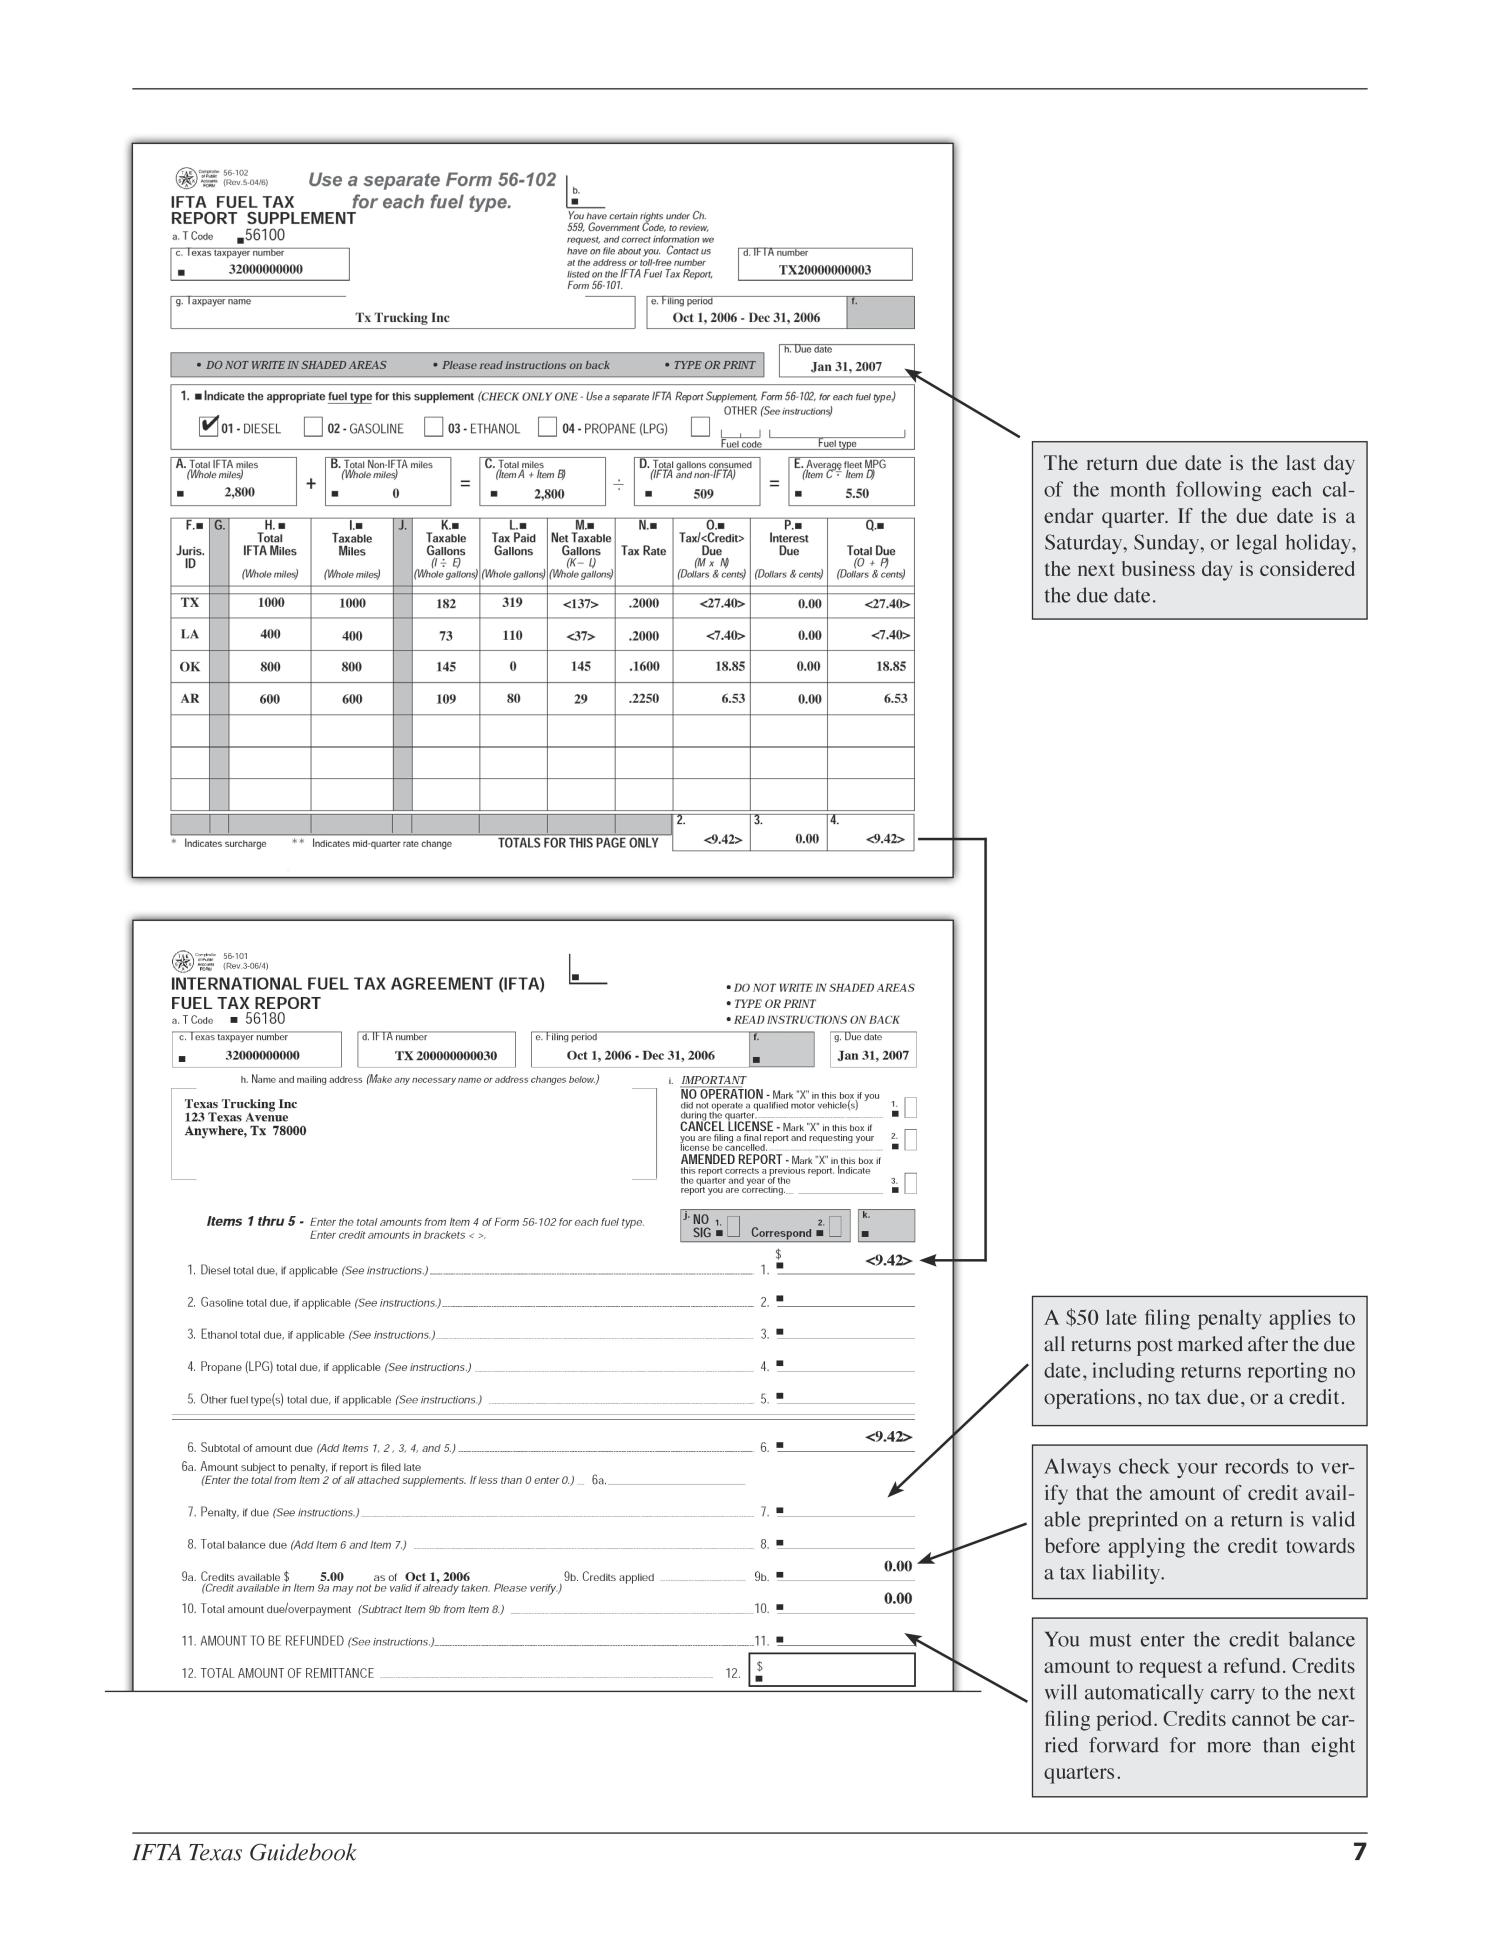 International Fuel Tax Agreement Texas Guidebook Page 7